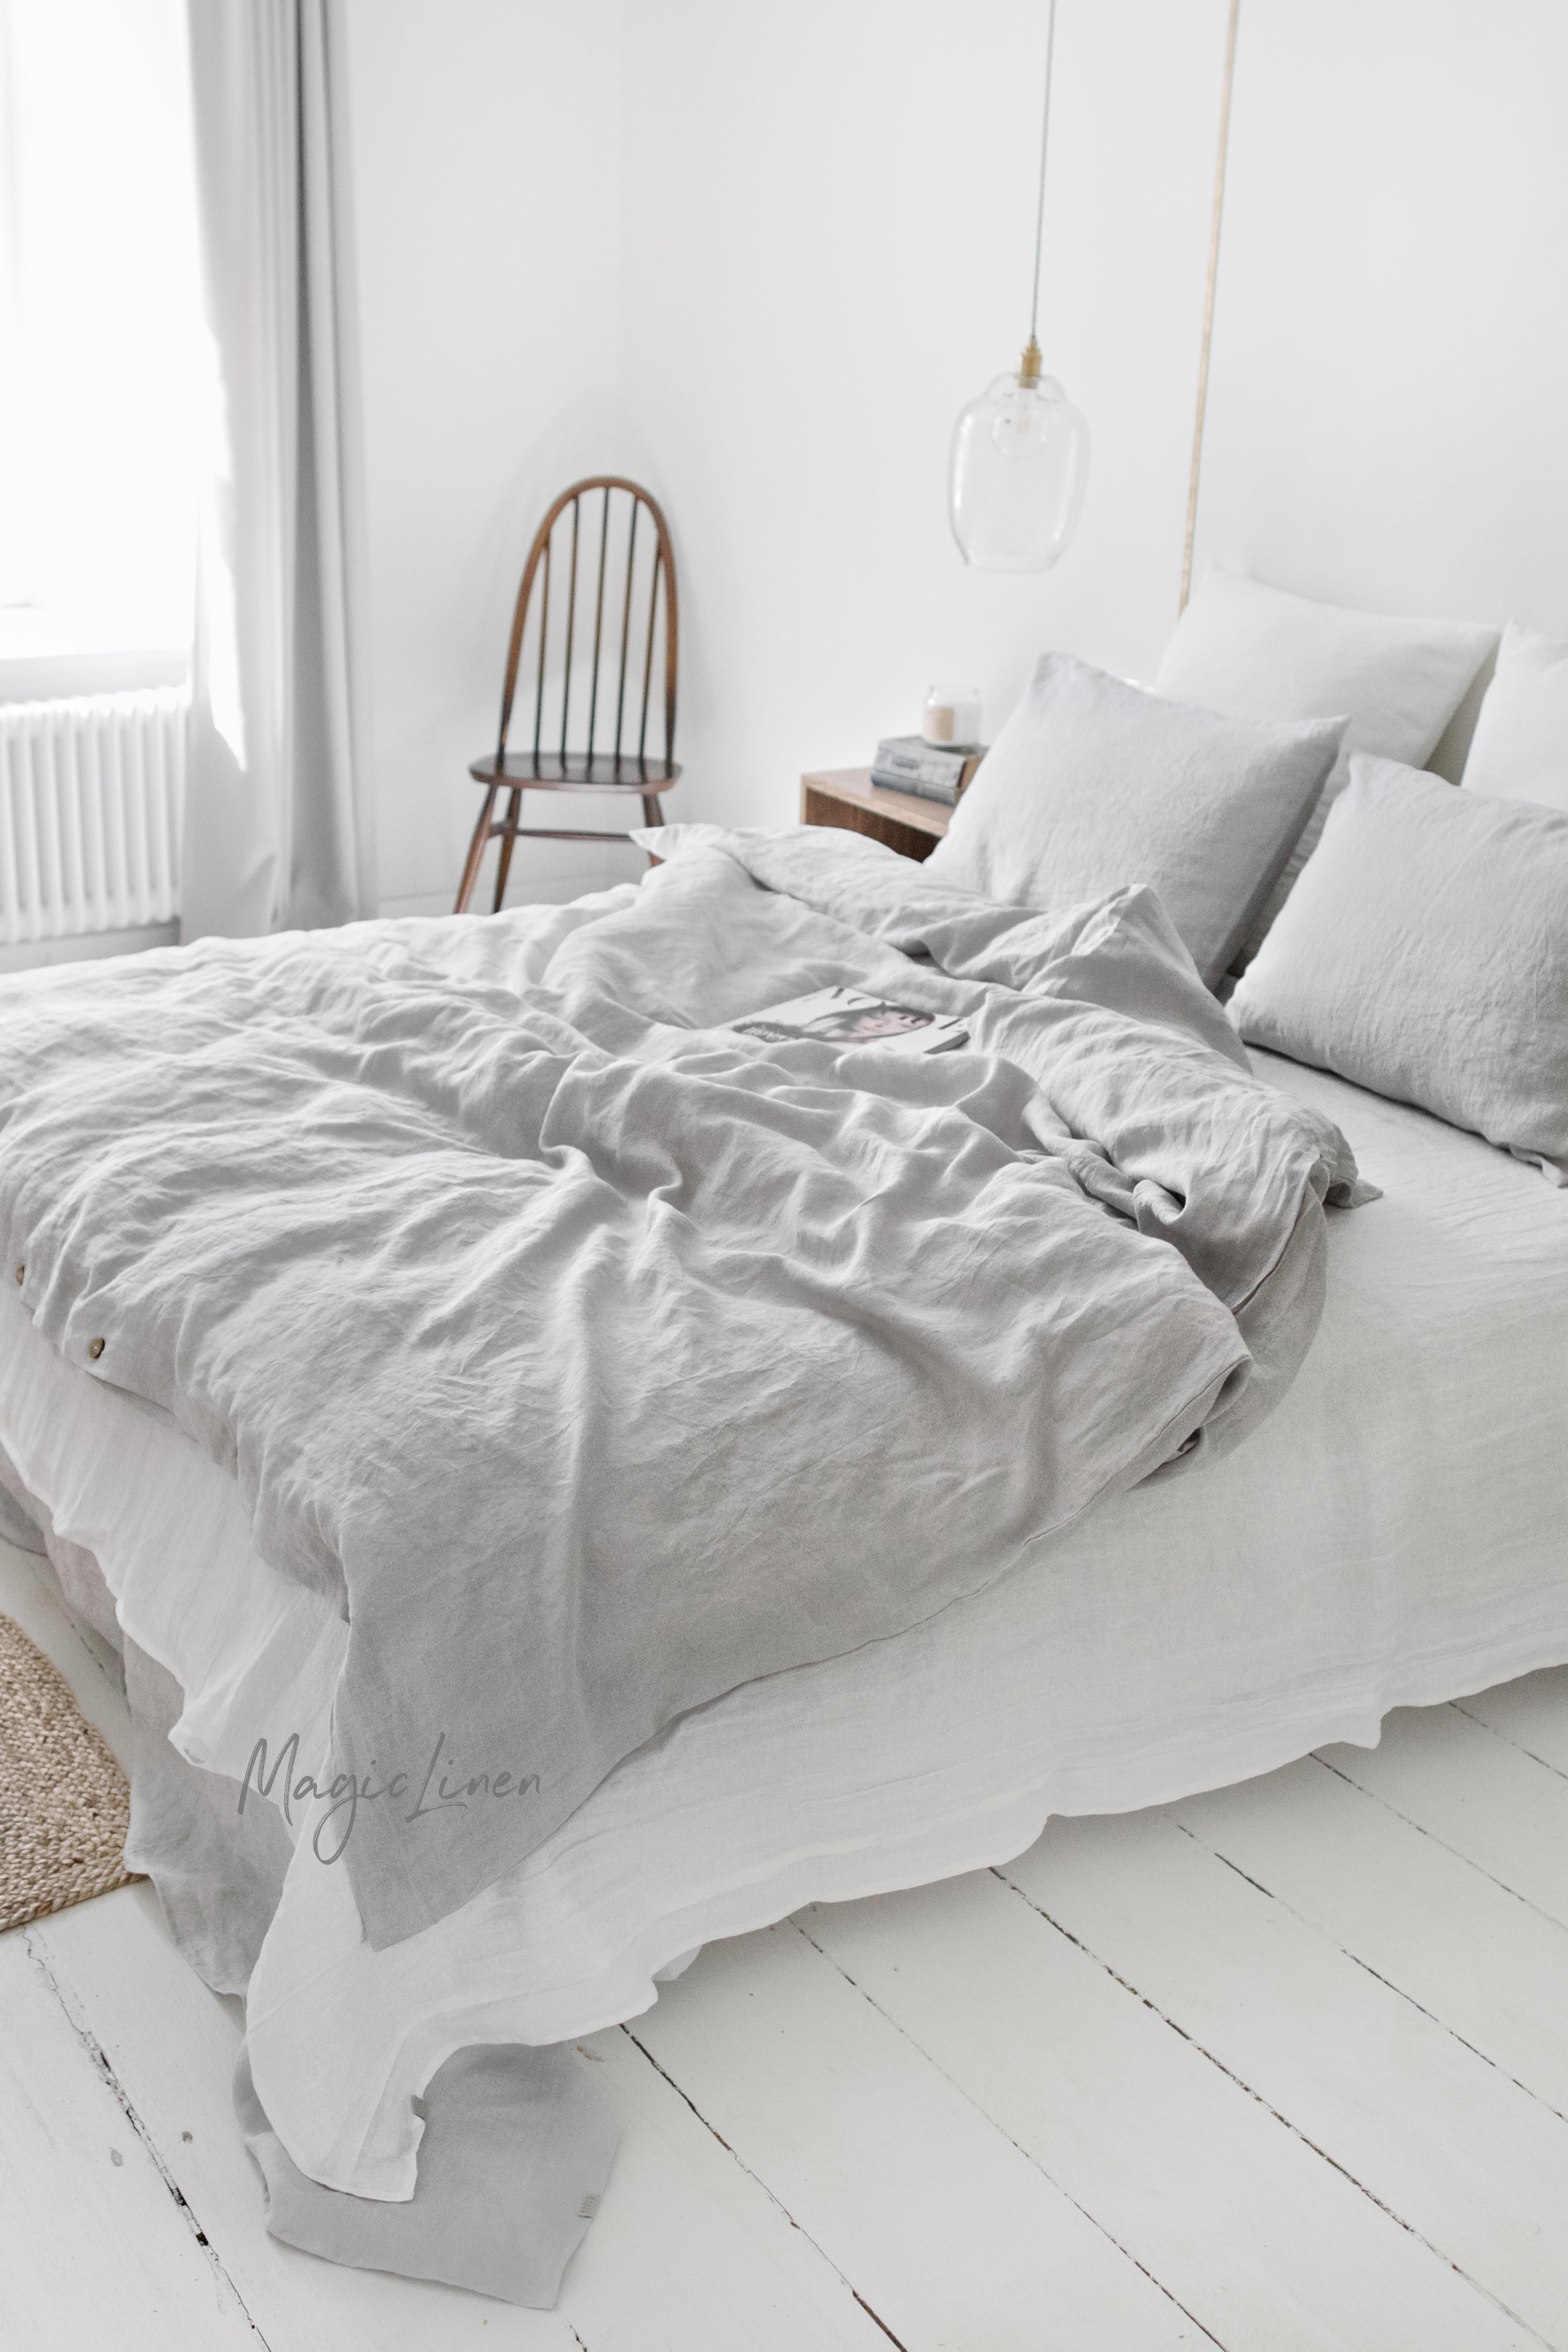 Onwijs Nothing gives your bedroom decor a more elegant look than linen CU-23